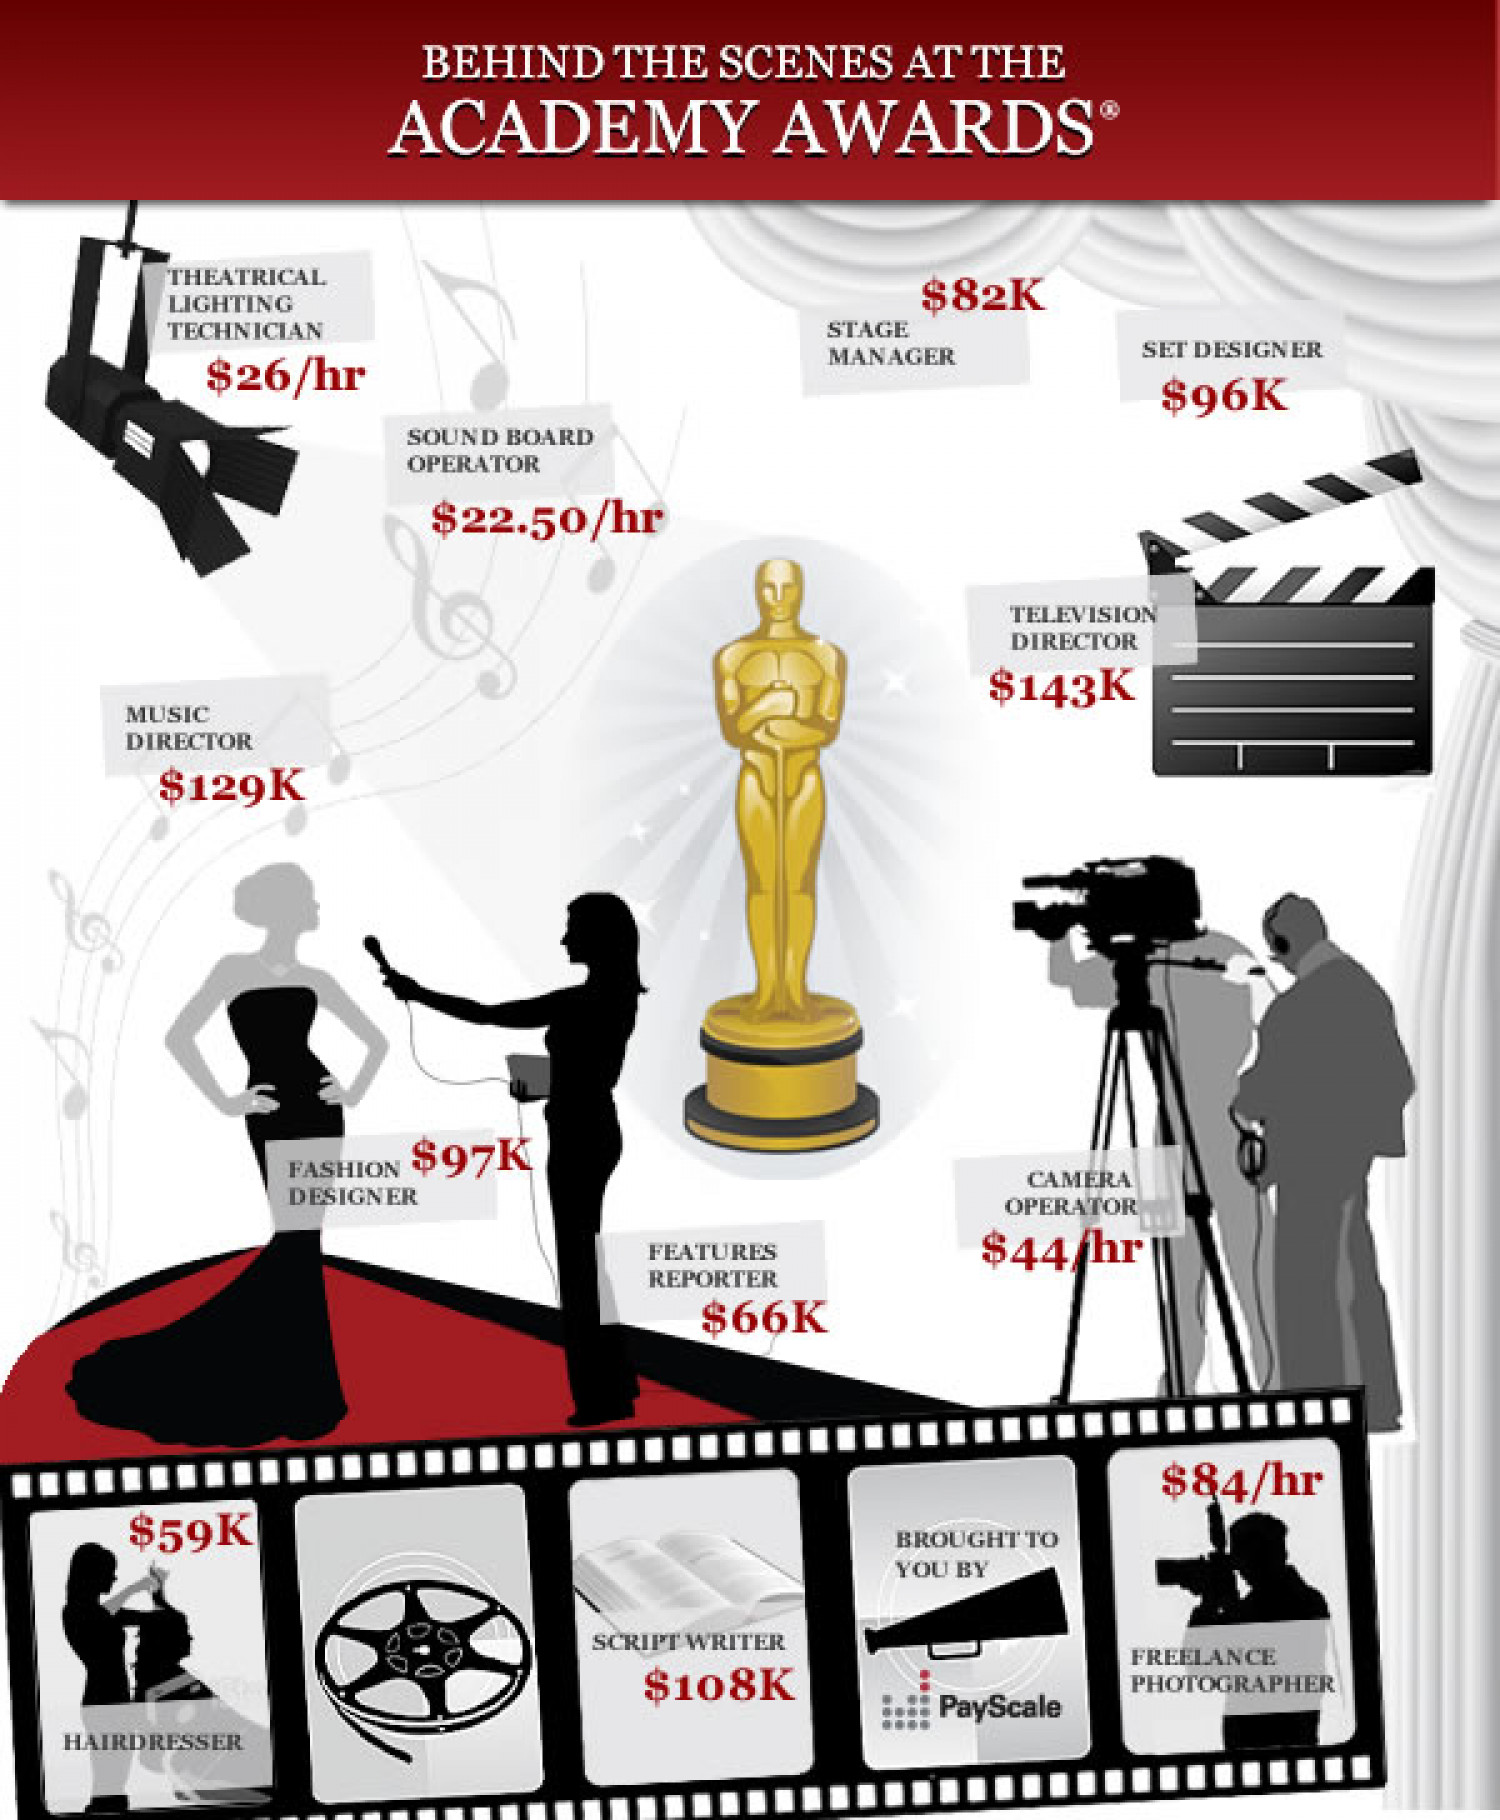 Behind the Scenes at the Academy Awards® Infographic